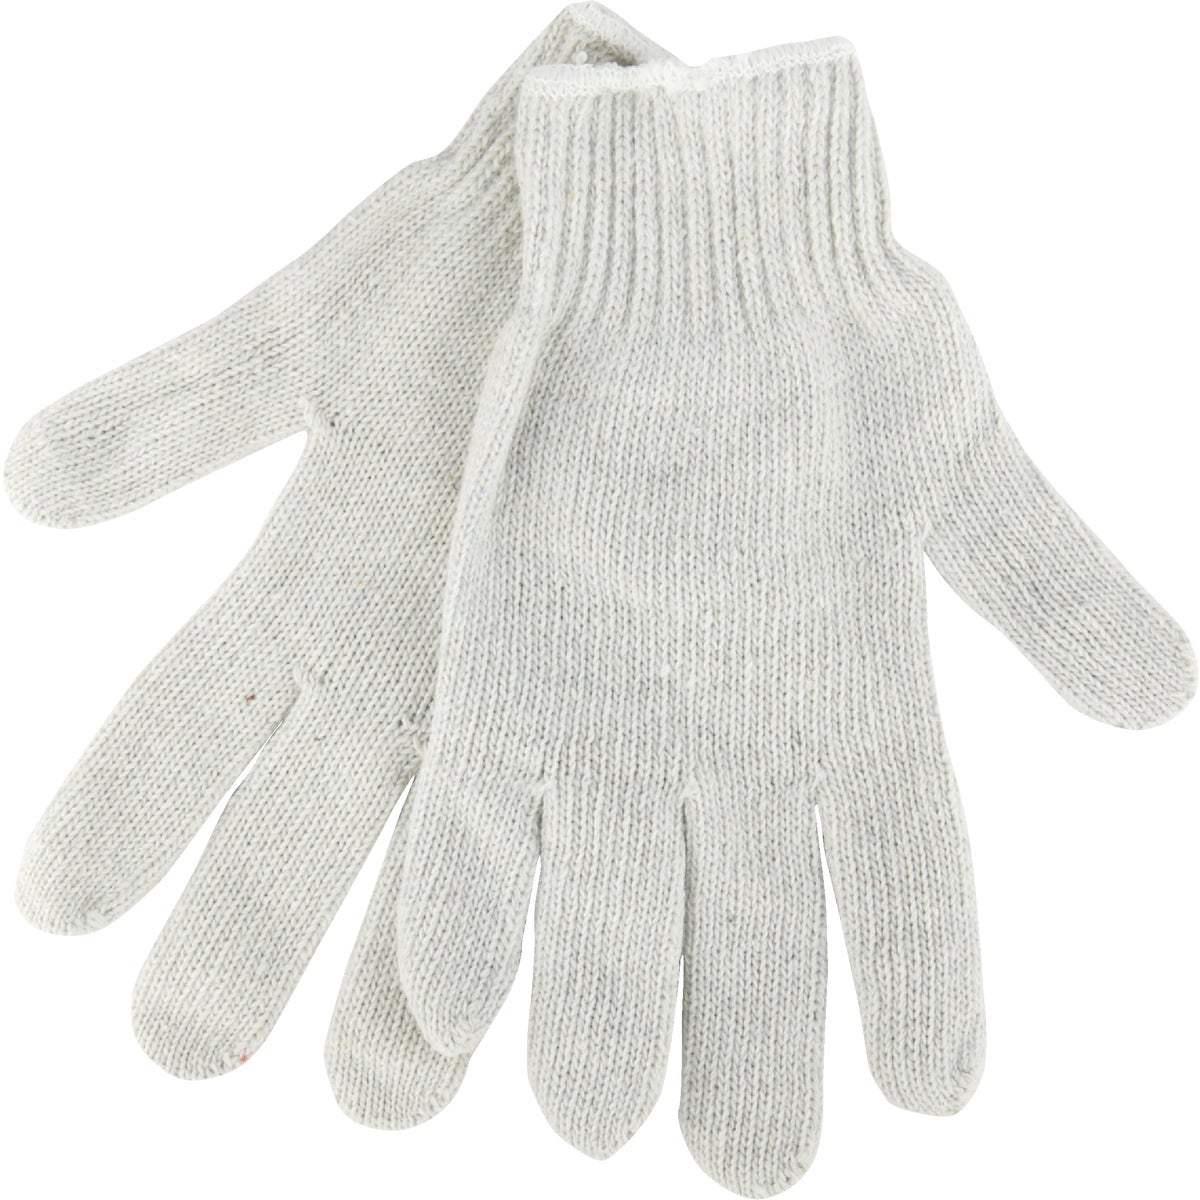 MED STRING KNIT GLOVE - 759762 by Do it Best